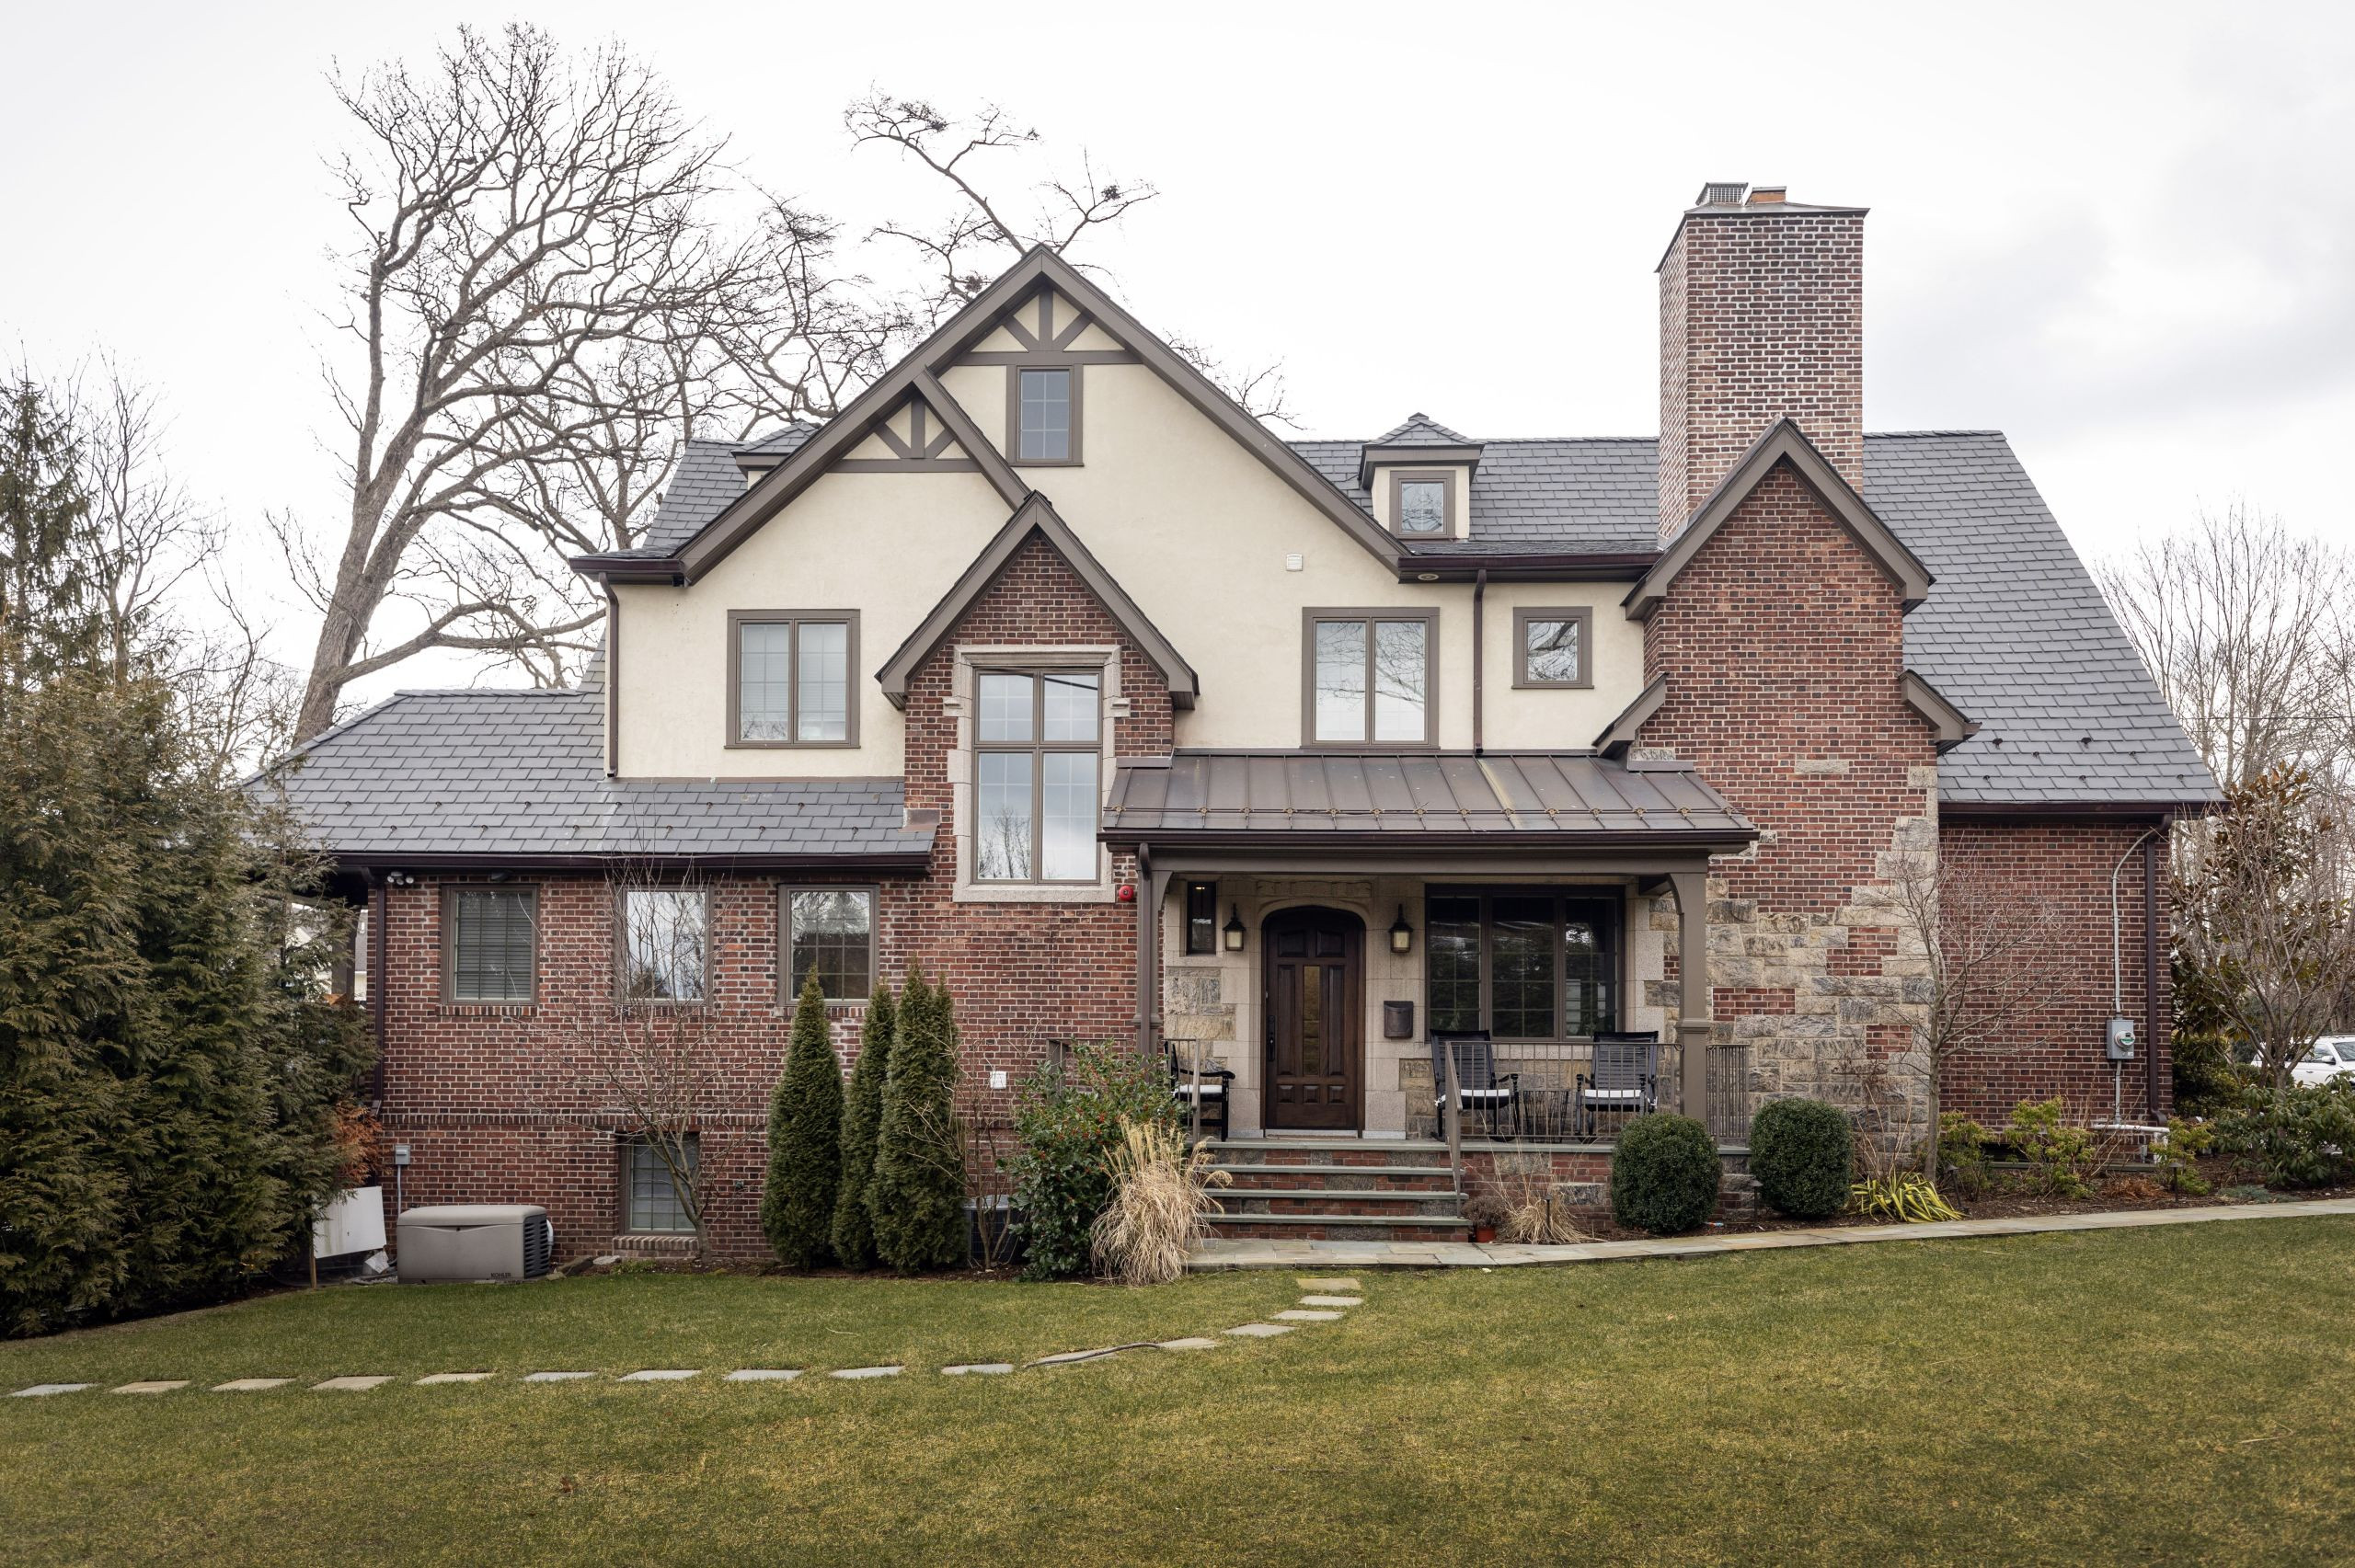 he home of Kimberly FitzSimons, who moved with her family to Pelham, N.Y., primarily because she wanted to be close to New York City where her husband works.